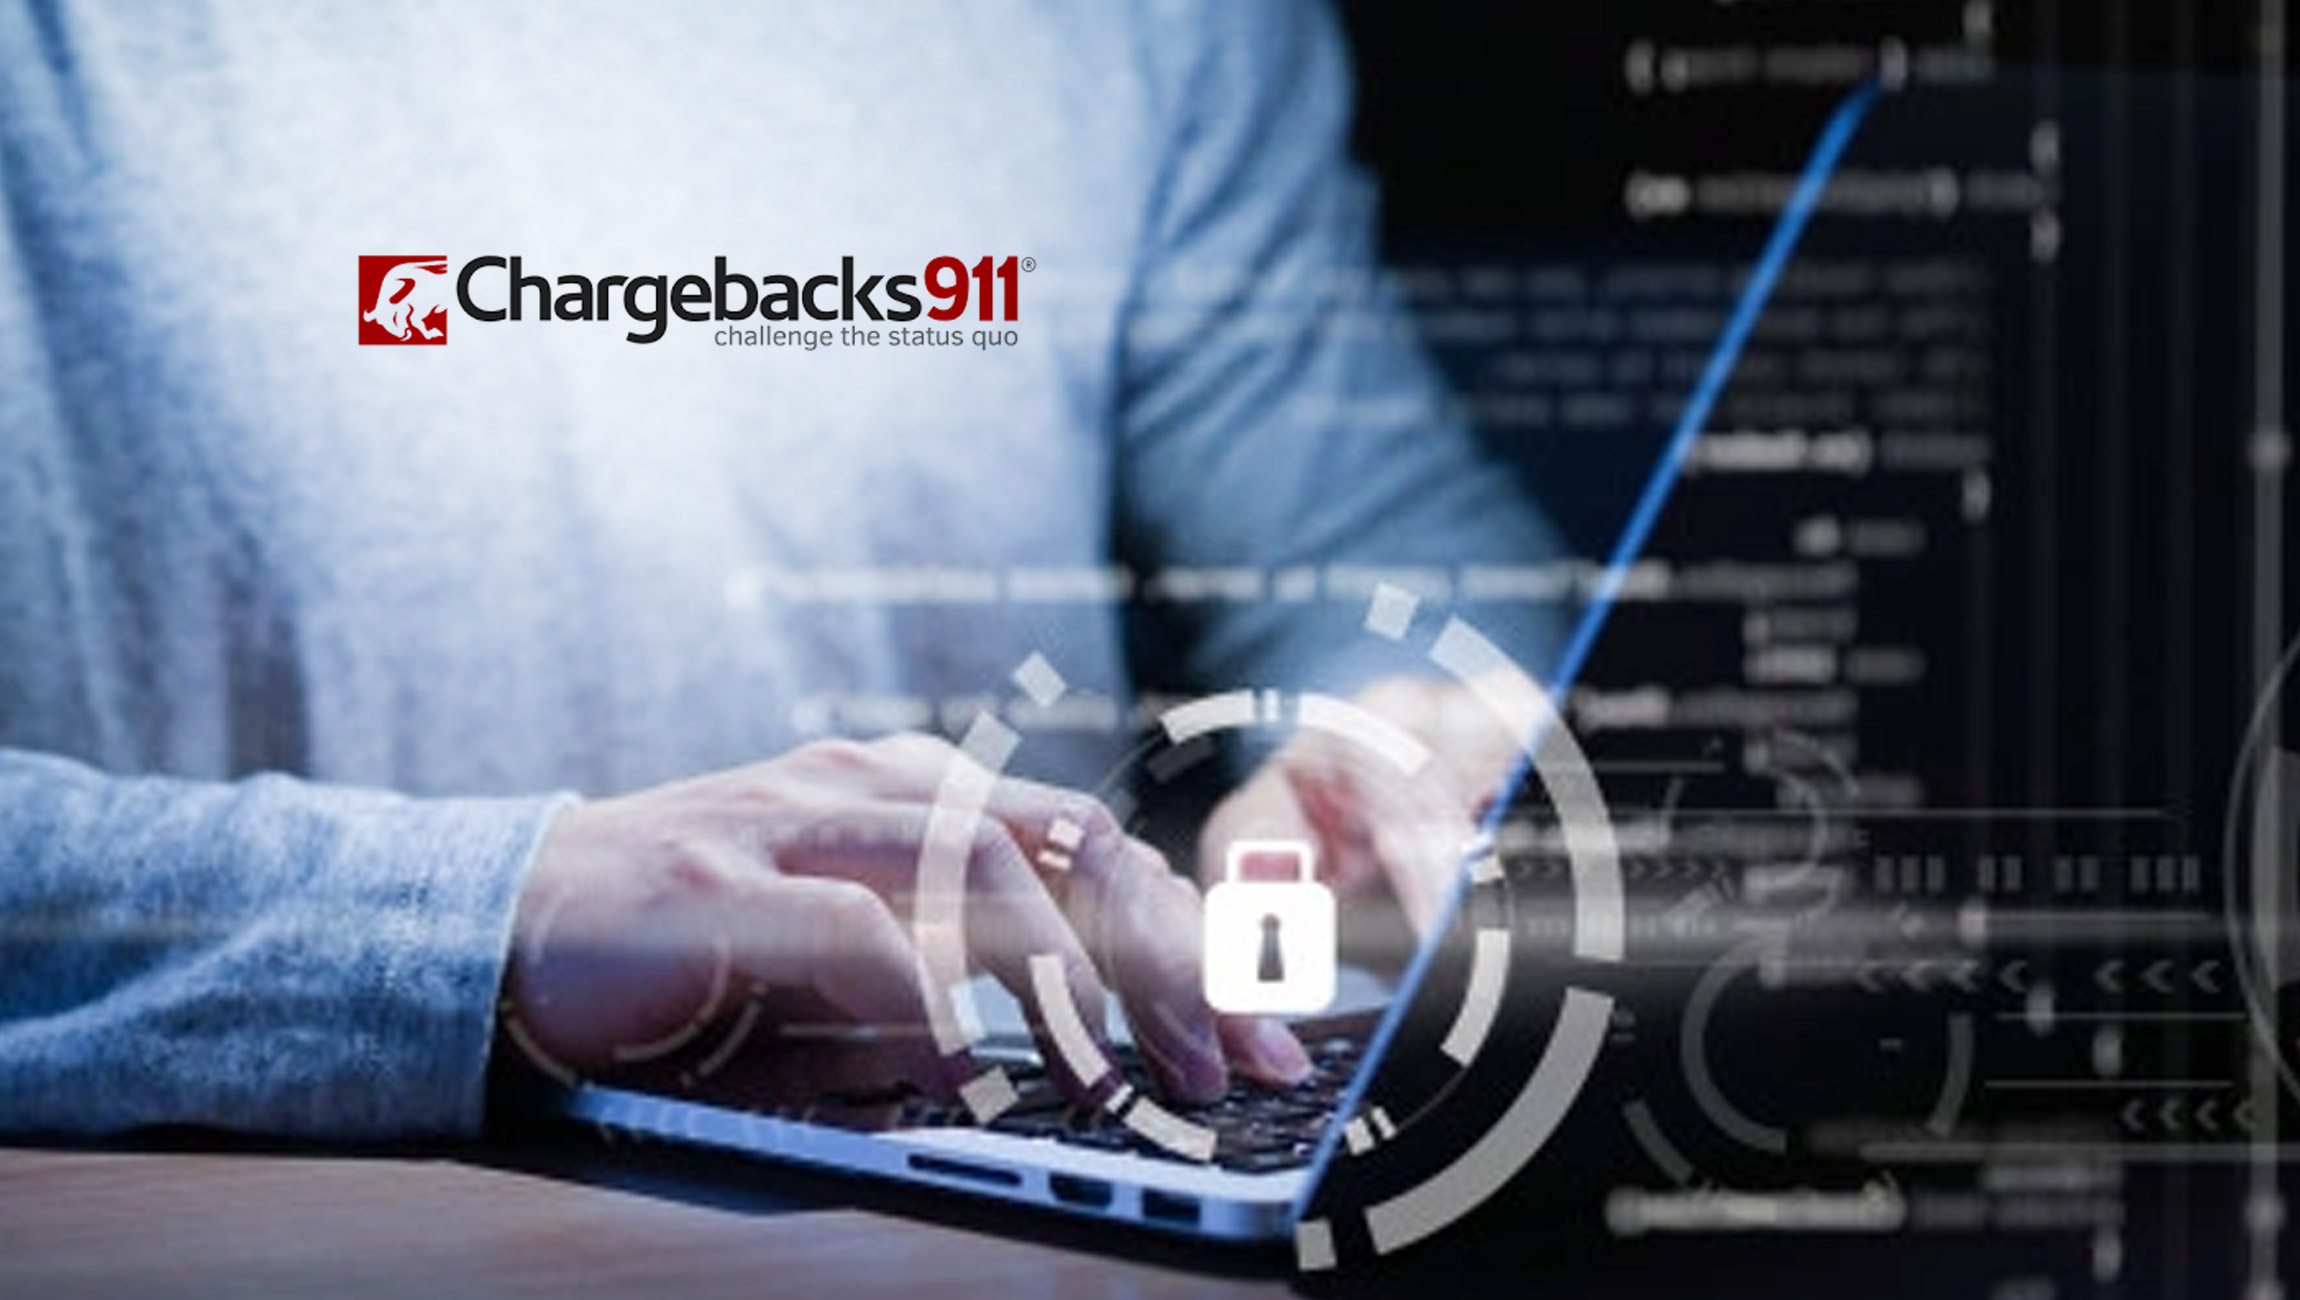 8-Out-of-10-Merchants-Have-Seen-an-Increase-in-Friendly-Fraud_-According-to-the-2021-Chargebacks911-Field-Report